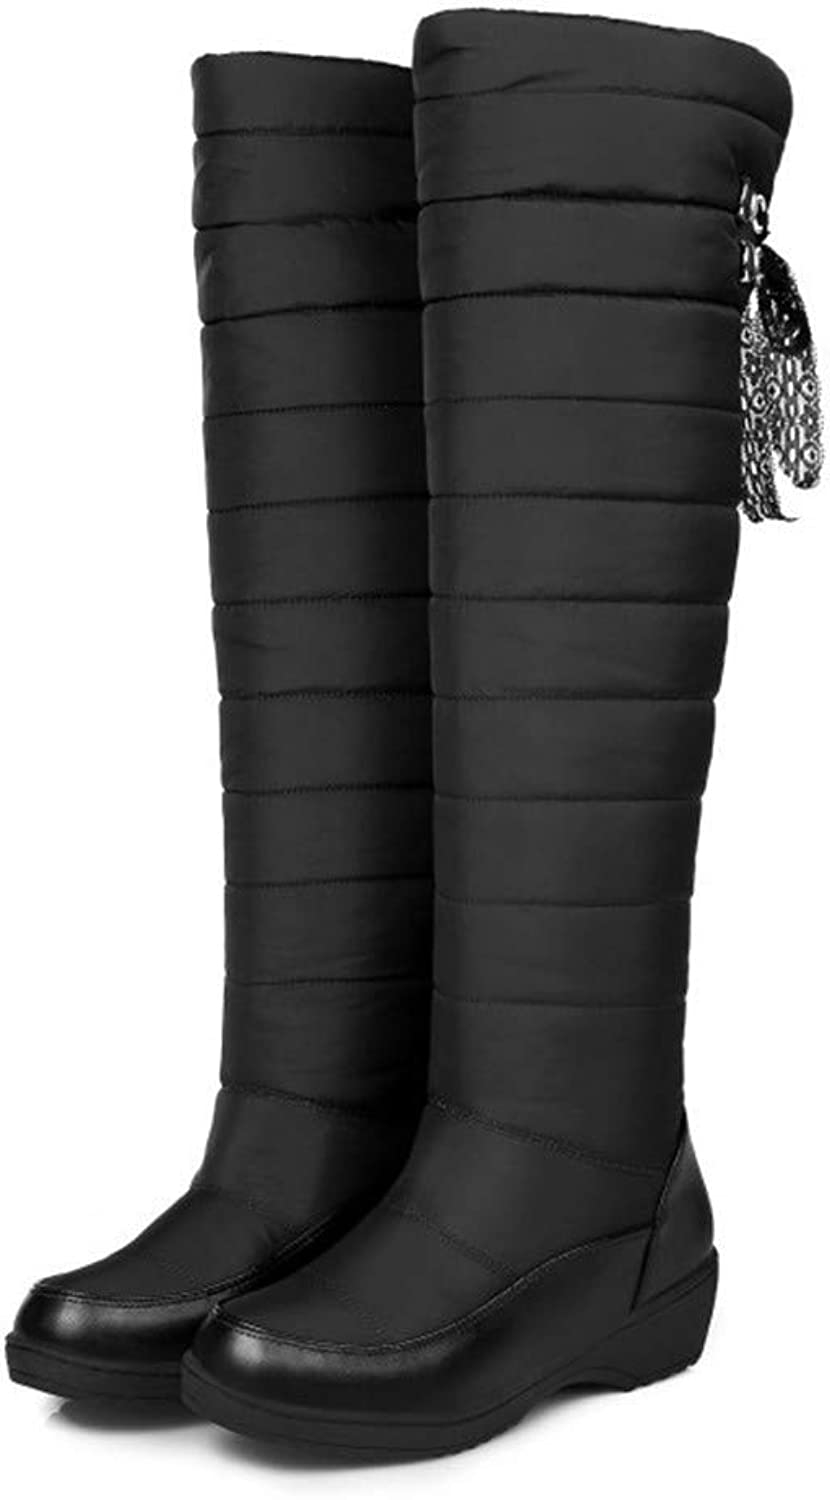 Top Shishang Waterproof and Anti-Skiing Boots, Winter Over The Knee, Low Heel, high Boots, Martin Boots, Women